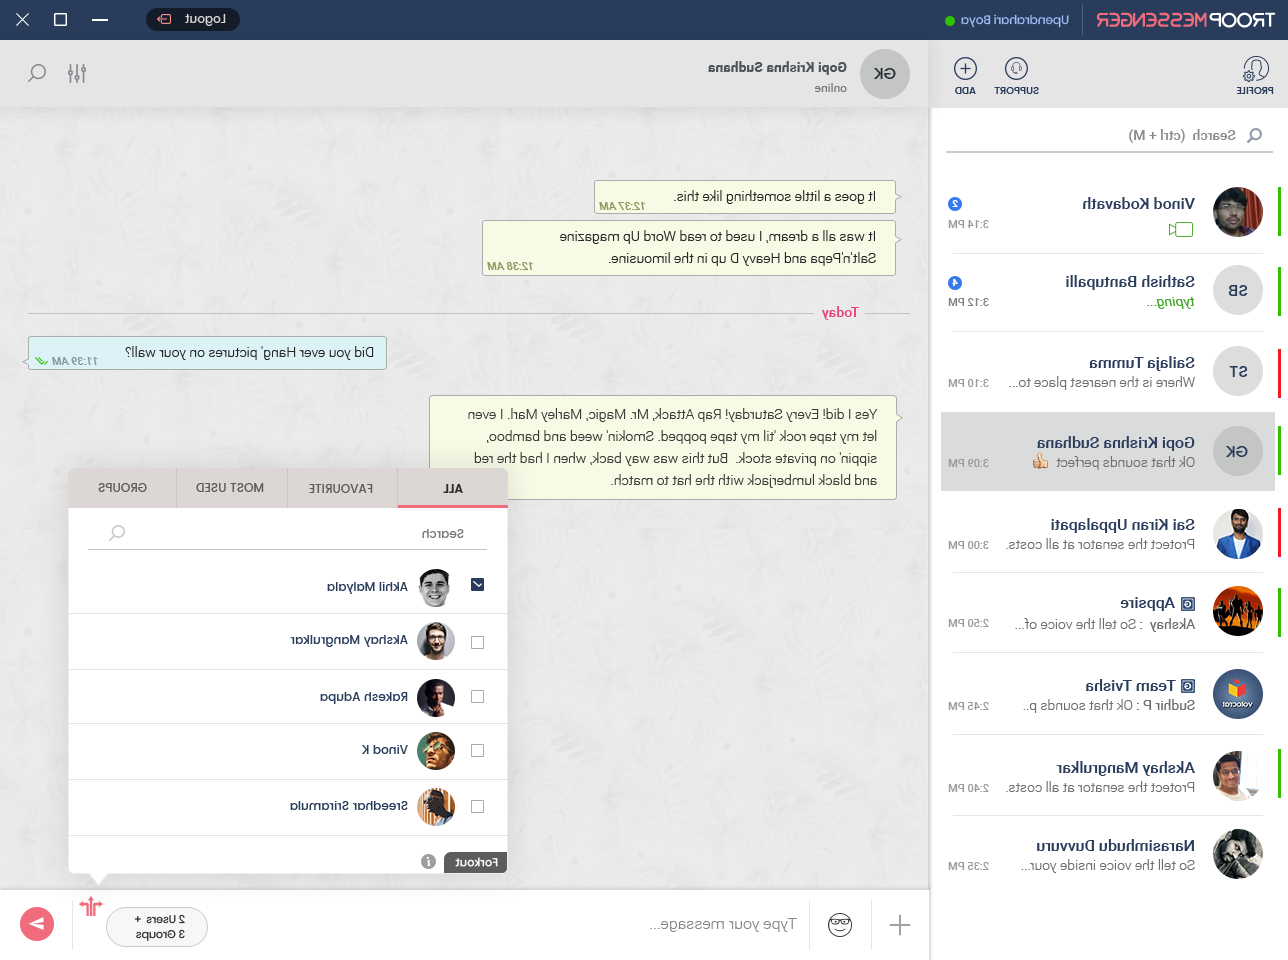 Is Mattermost owned by slack?